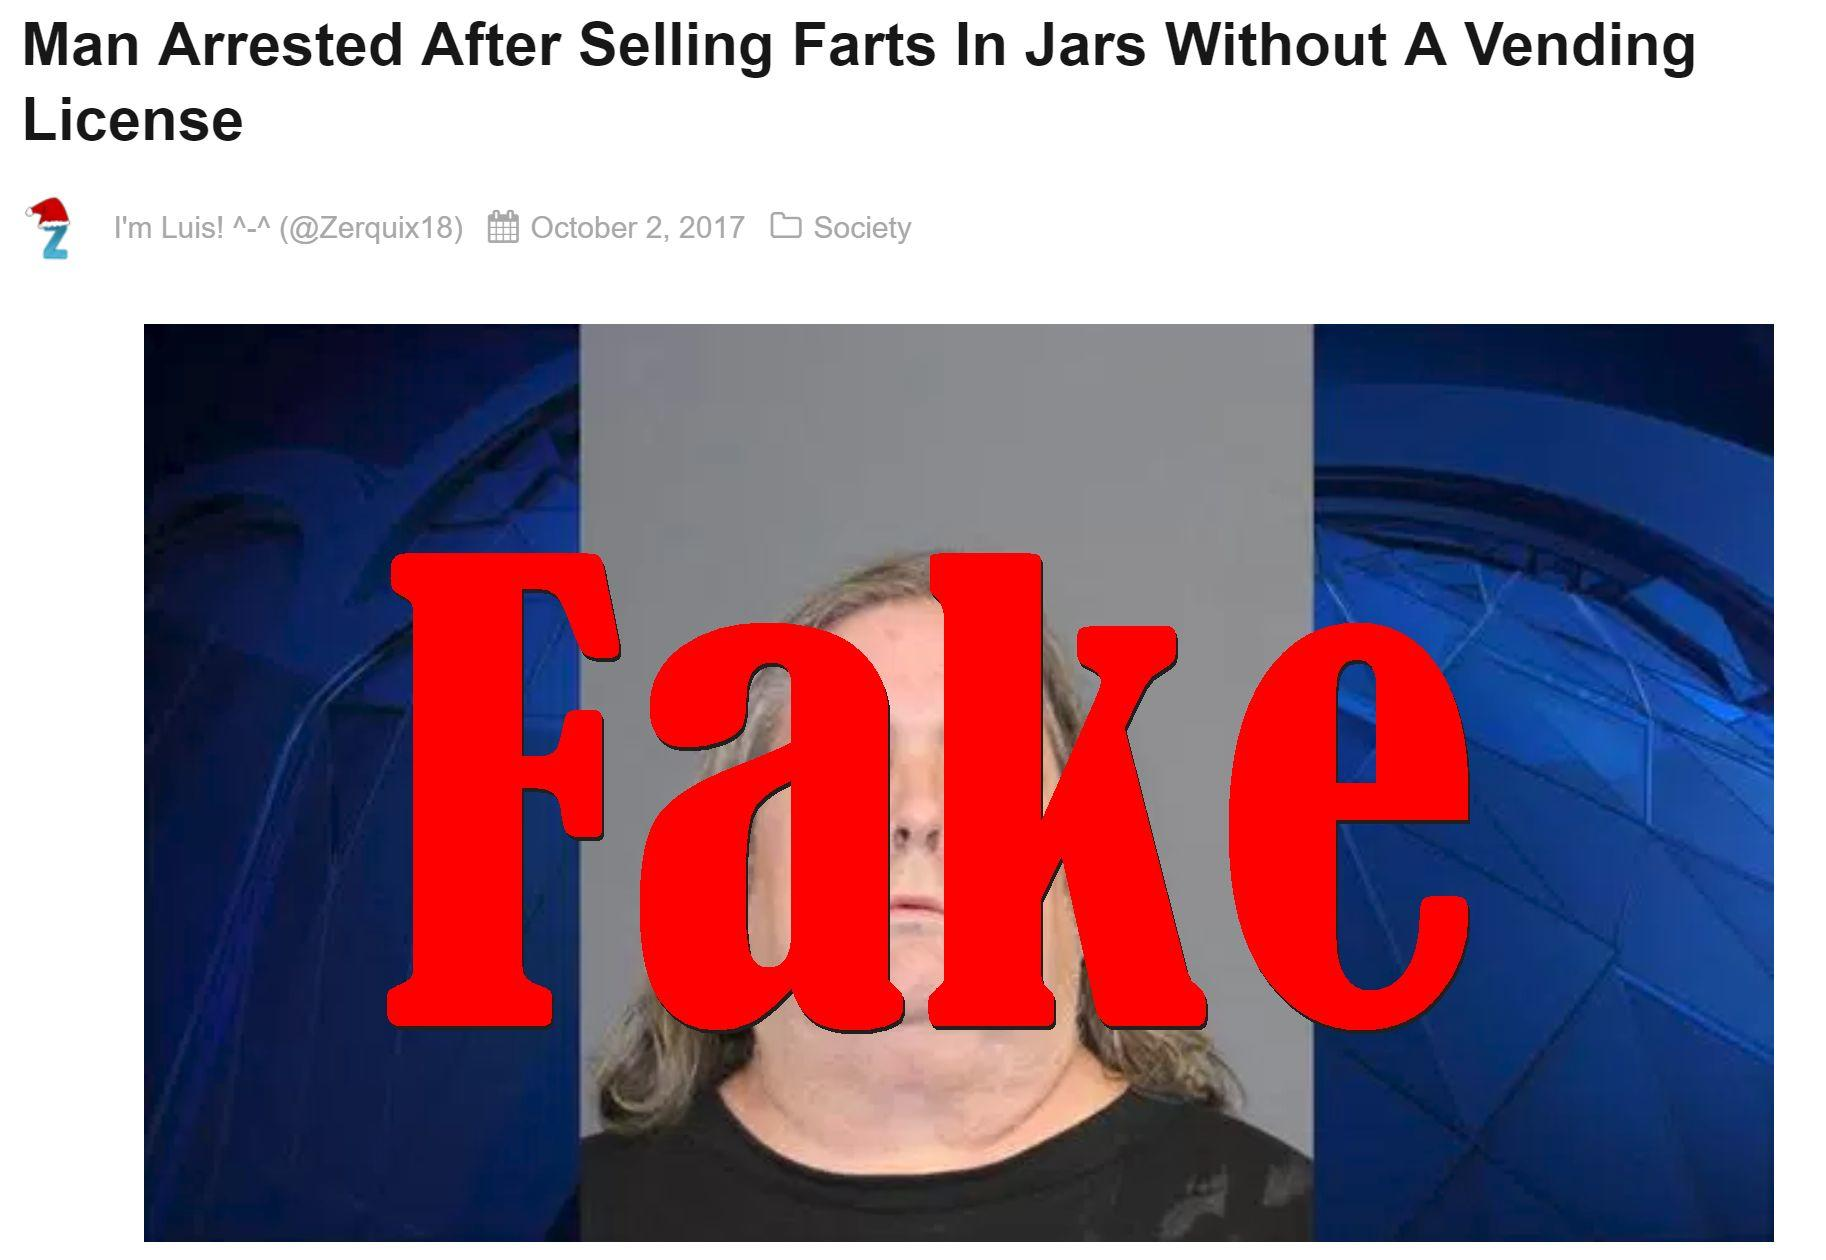 Fake News: Man NOT Arrested After Selling Farts In Jars Without A Vending License